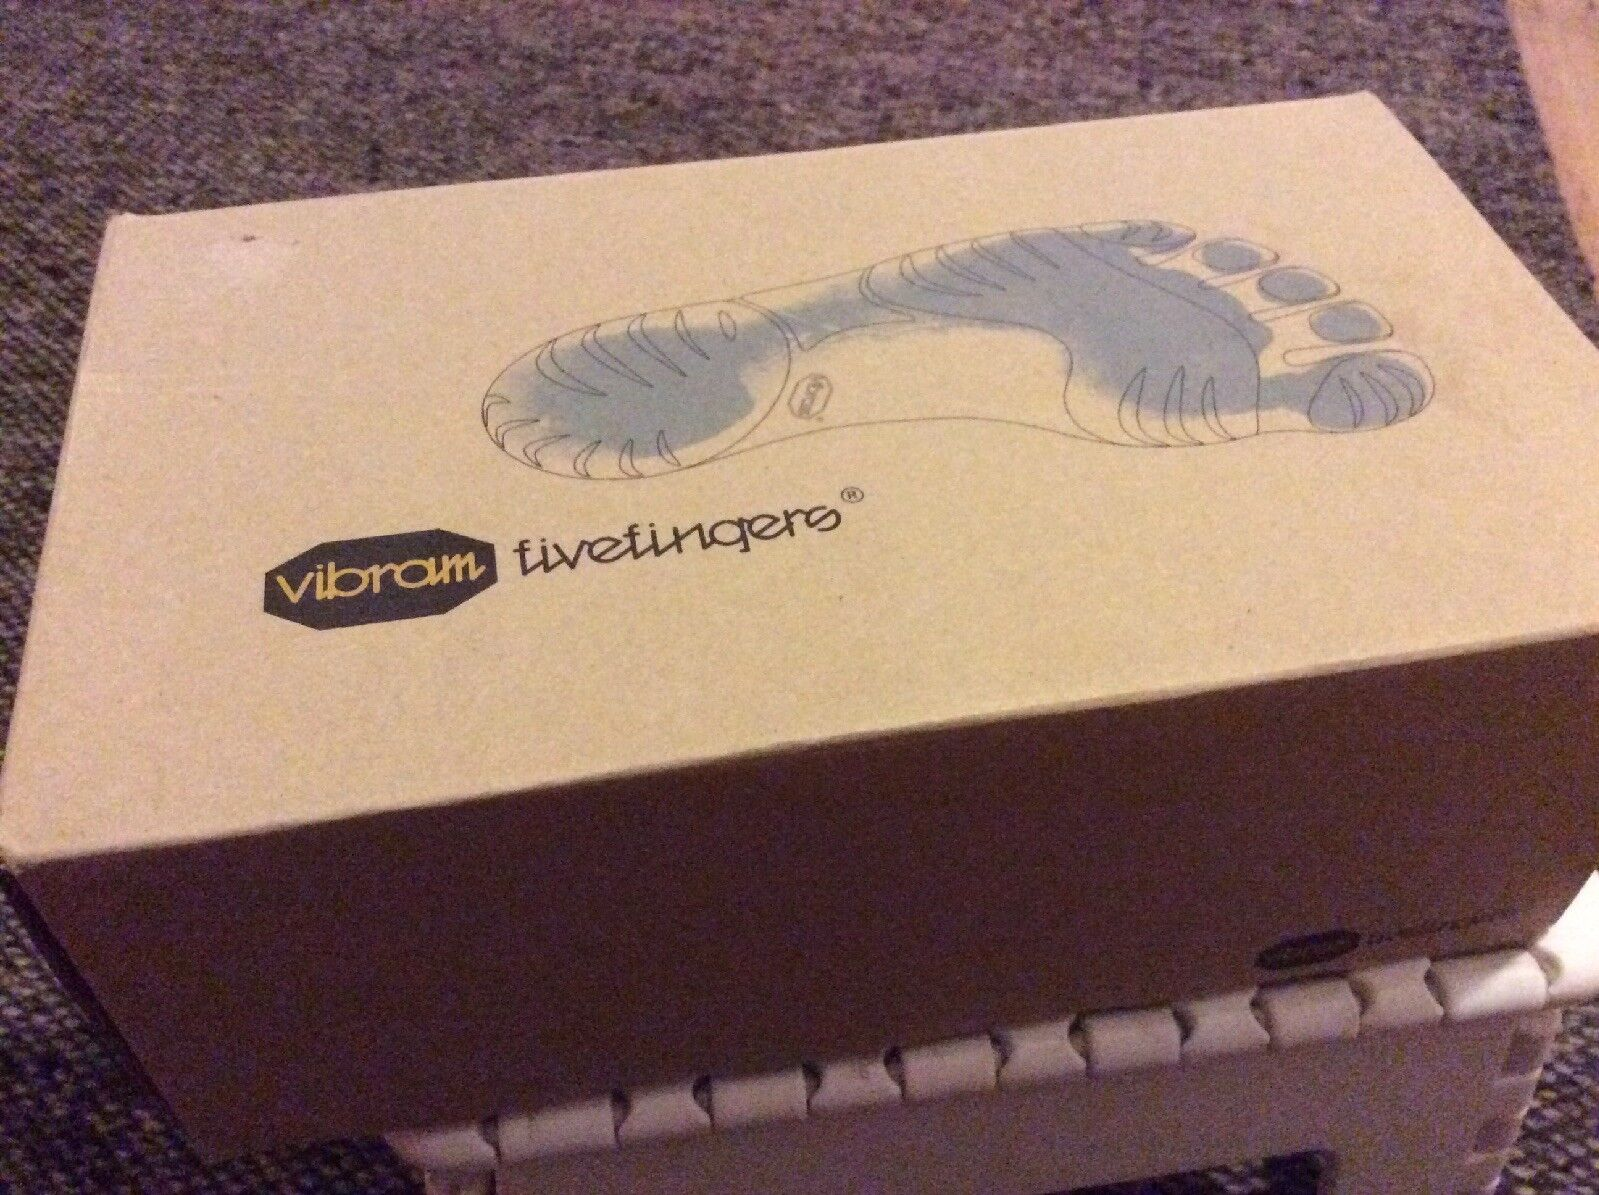 VIBRAM  FIVE FINGERS BNWB MOISTURE MANAGMENT EU43 TRAINING YOGA BAREFOOT SHOES  we take customers as our god